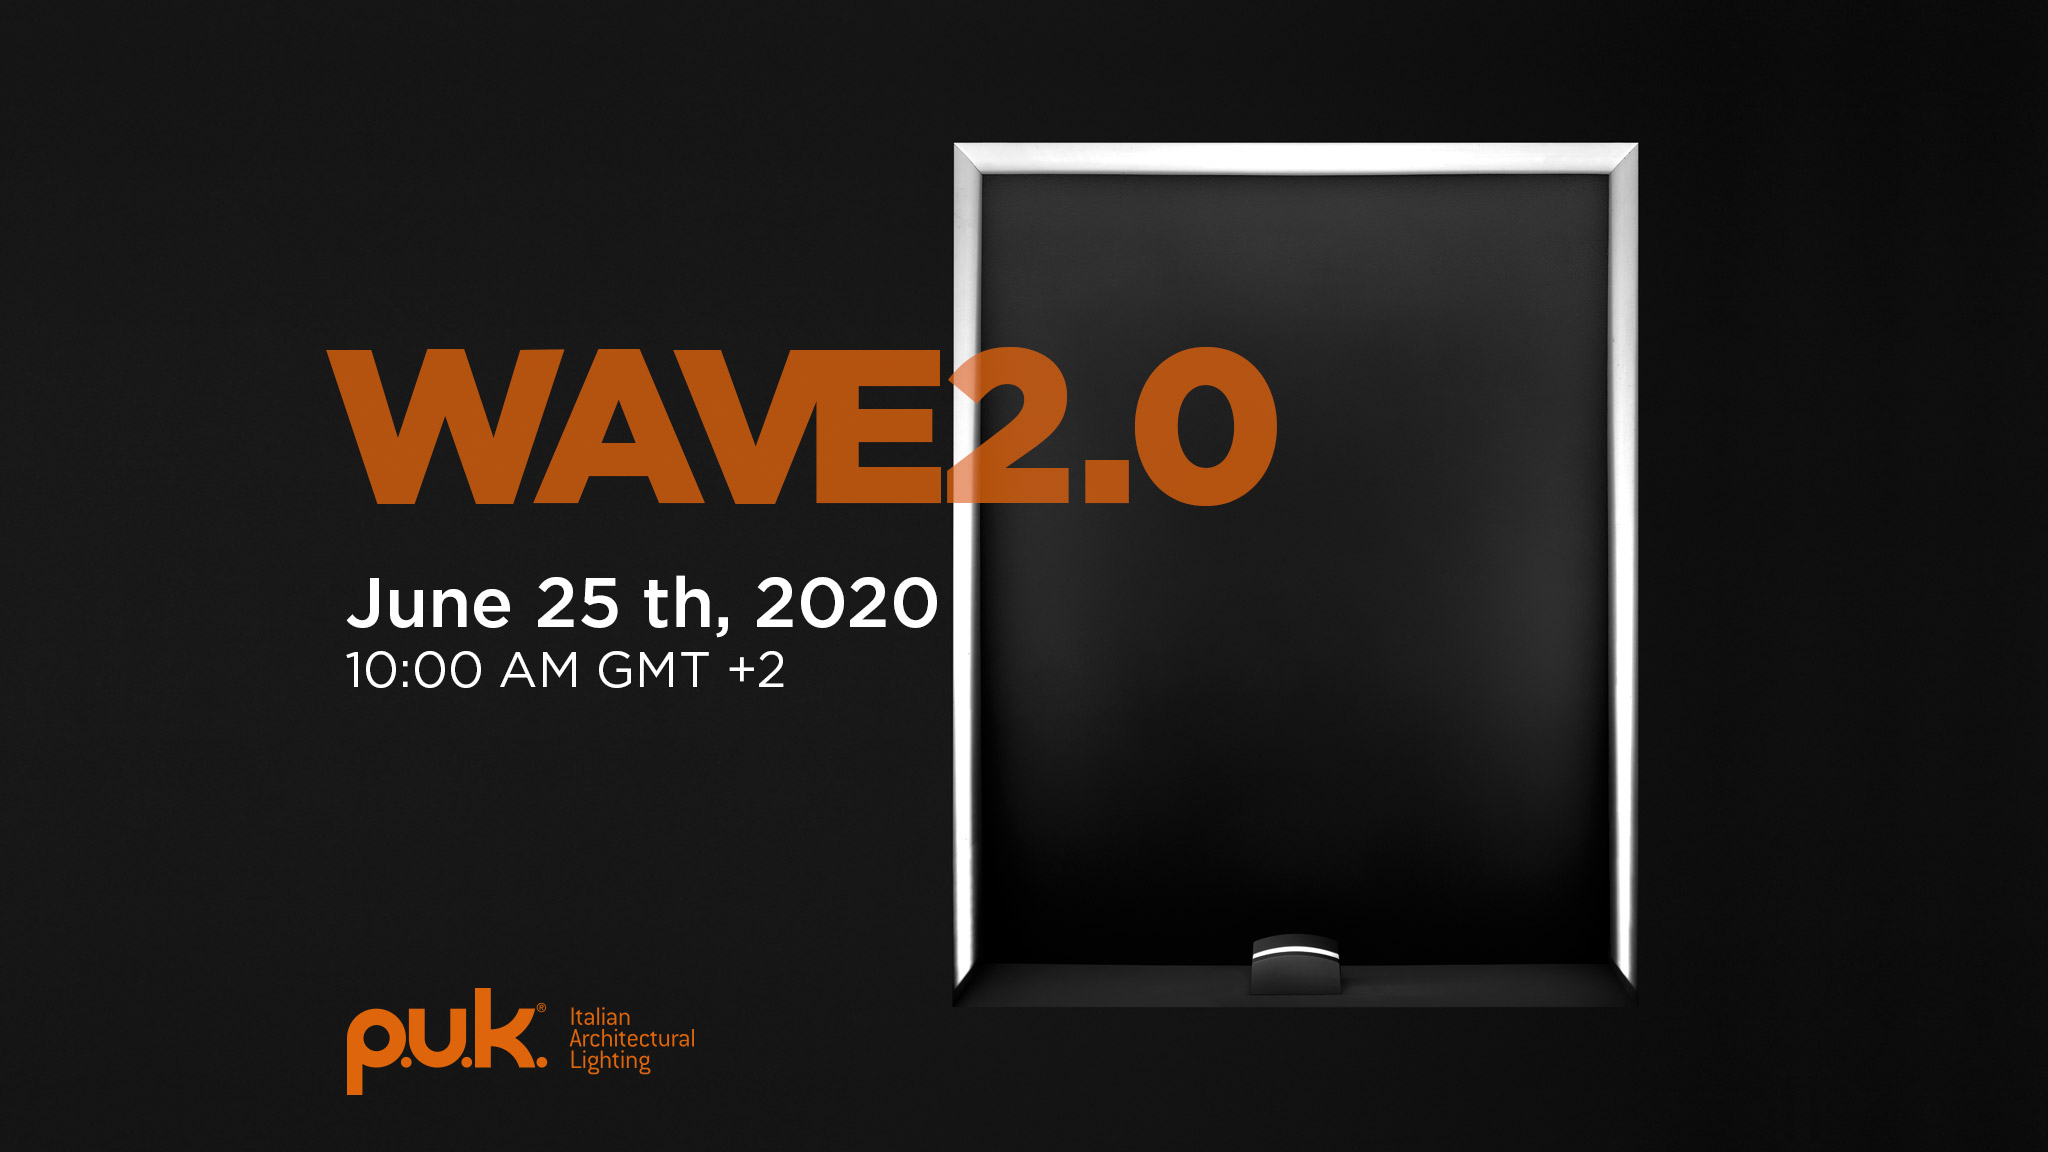 Wave 2.0